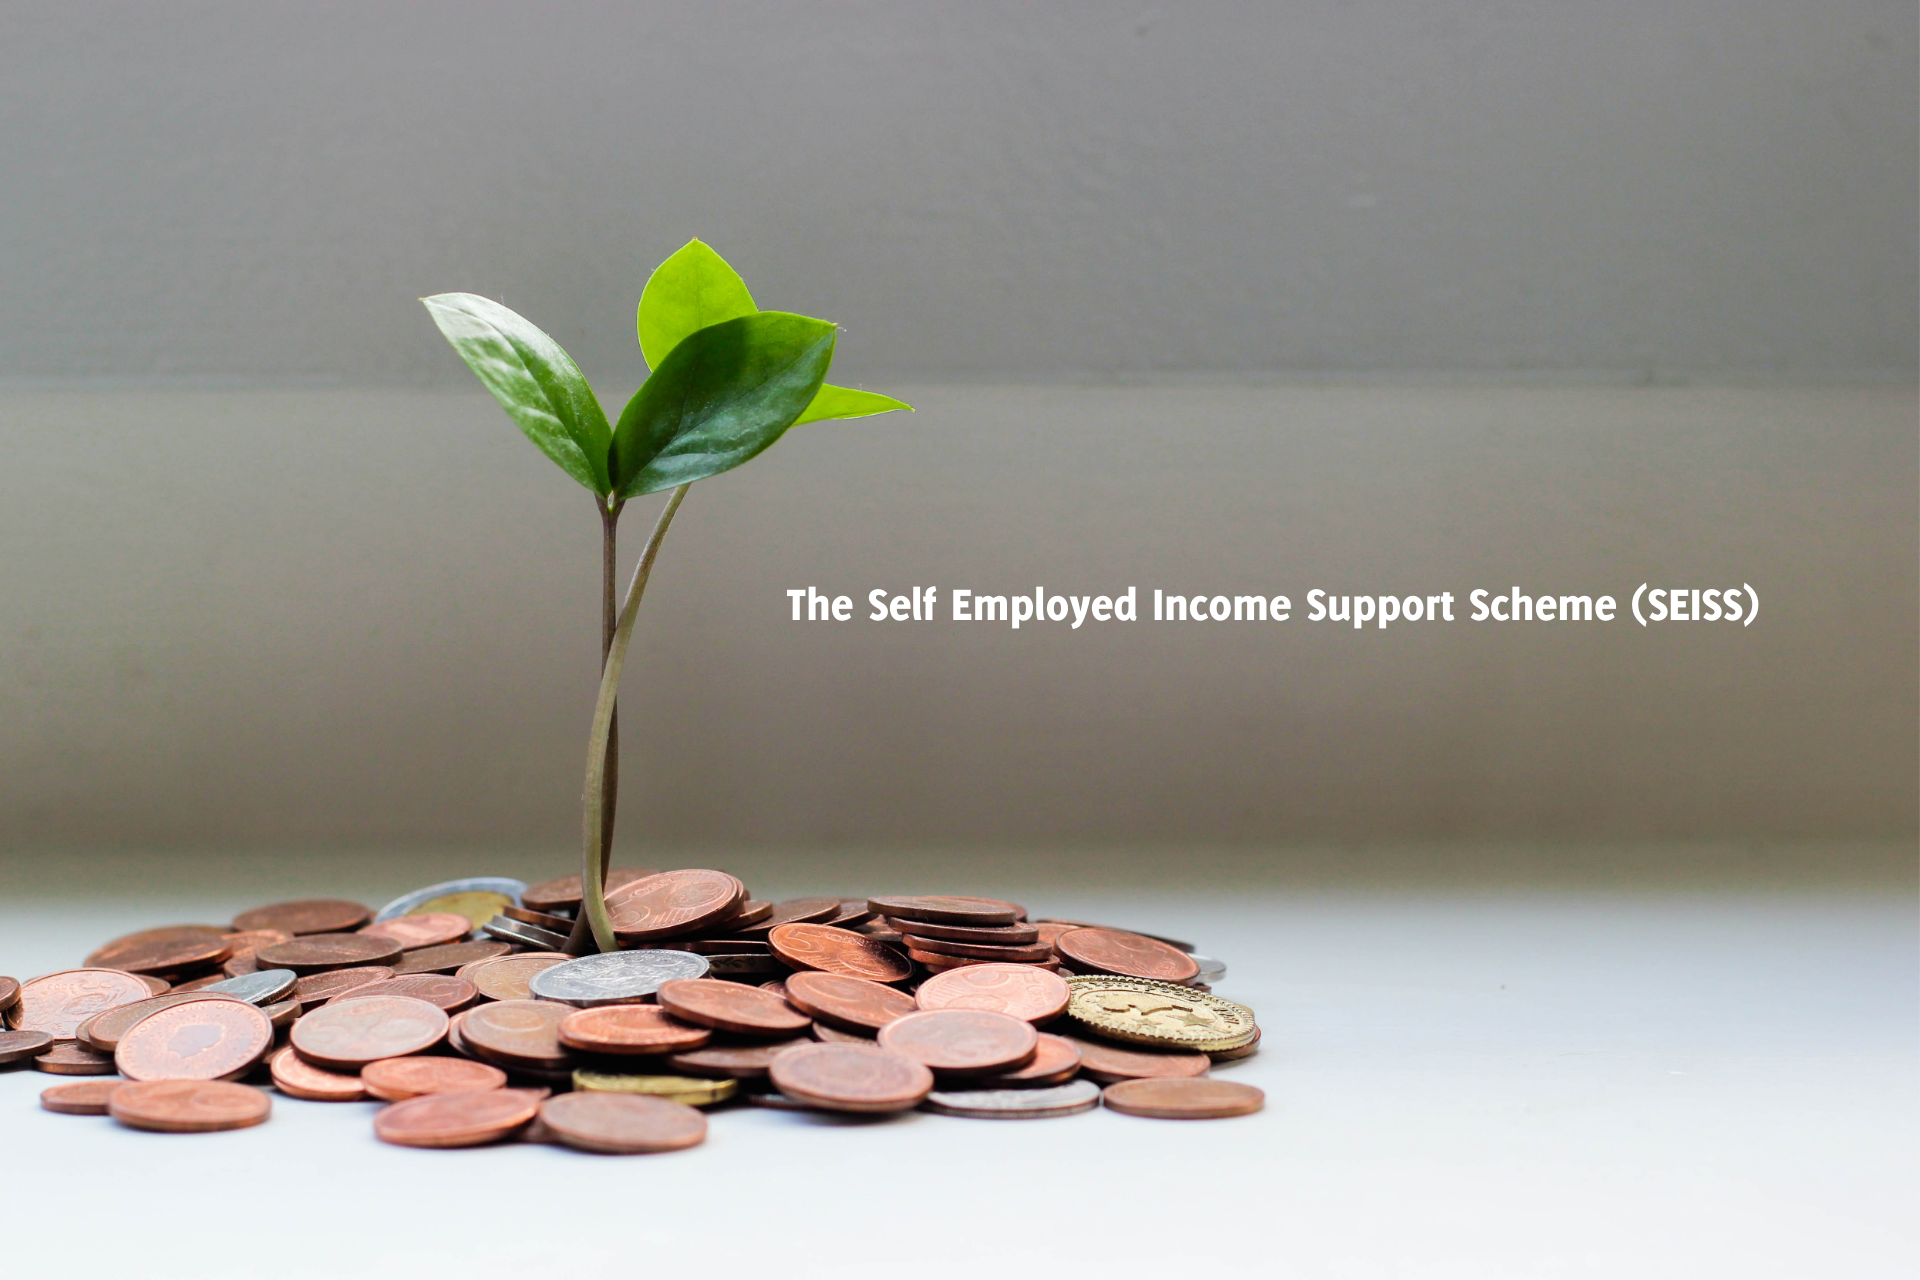 The Self Employed Income Support Scheme (SEISS)